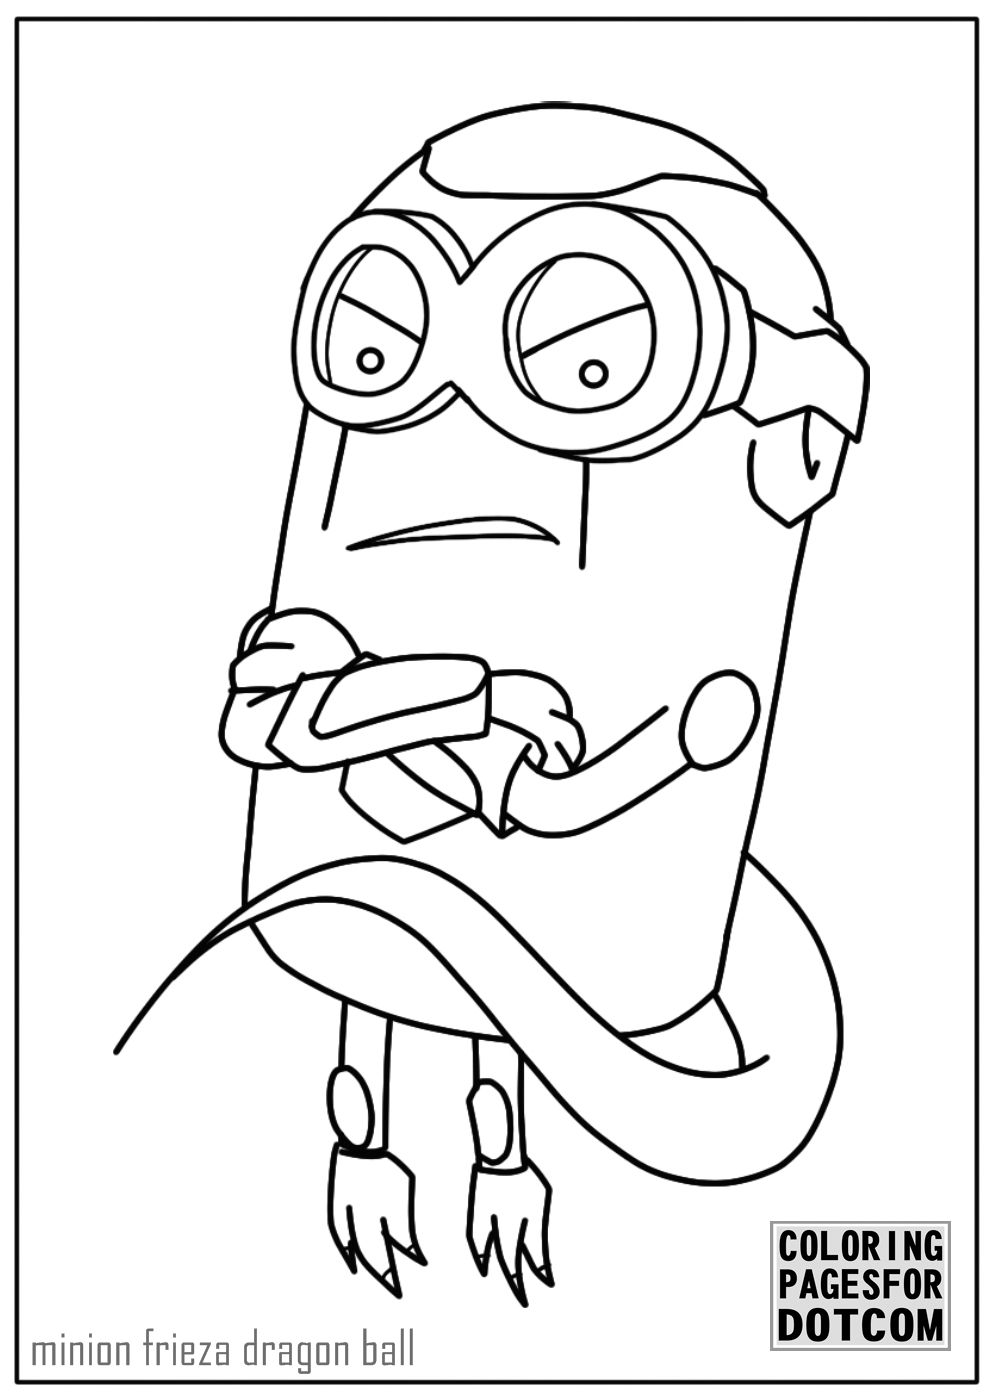 minion frieza dragon ball coloring page is free to download but